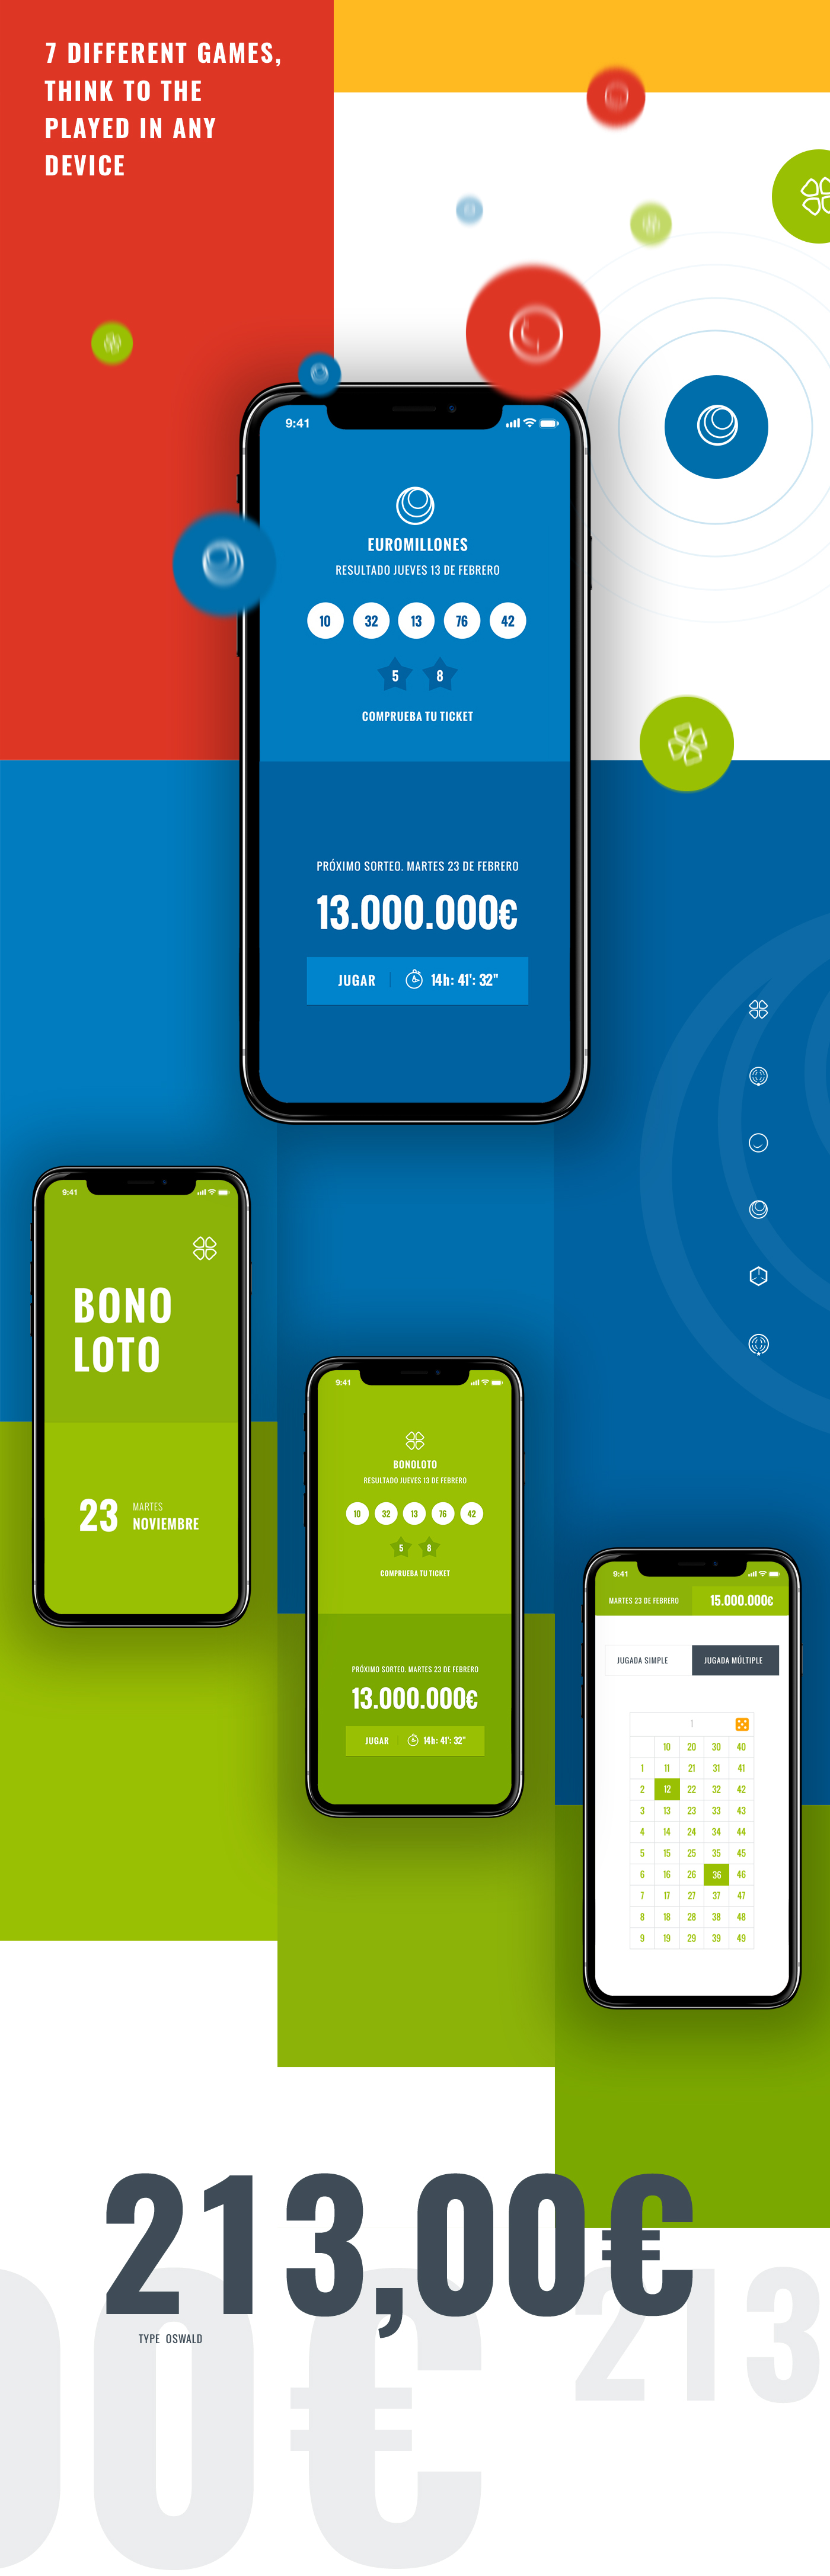 Responsive UI ux Games Lottery mobile smartphone user interface user experience play